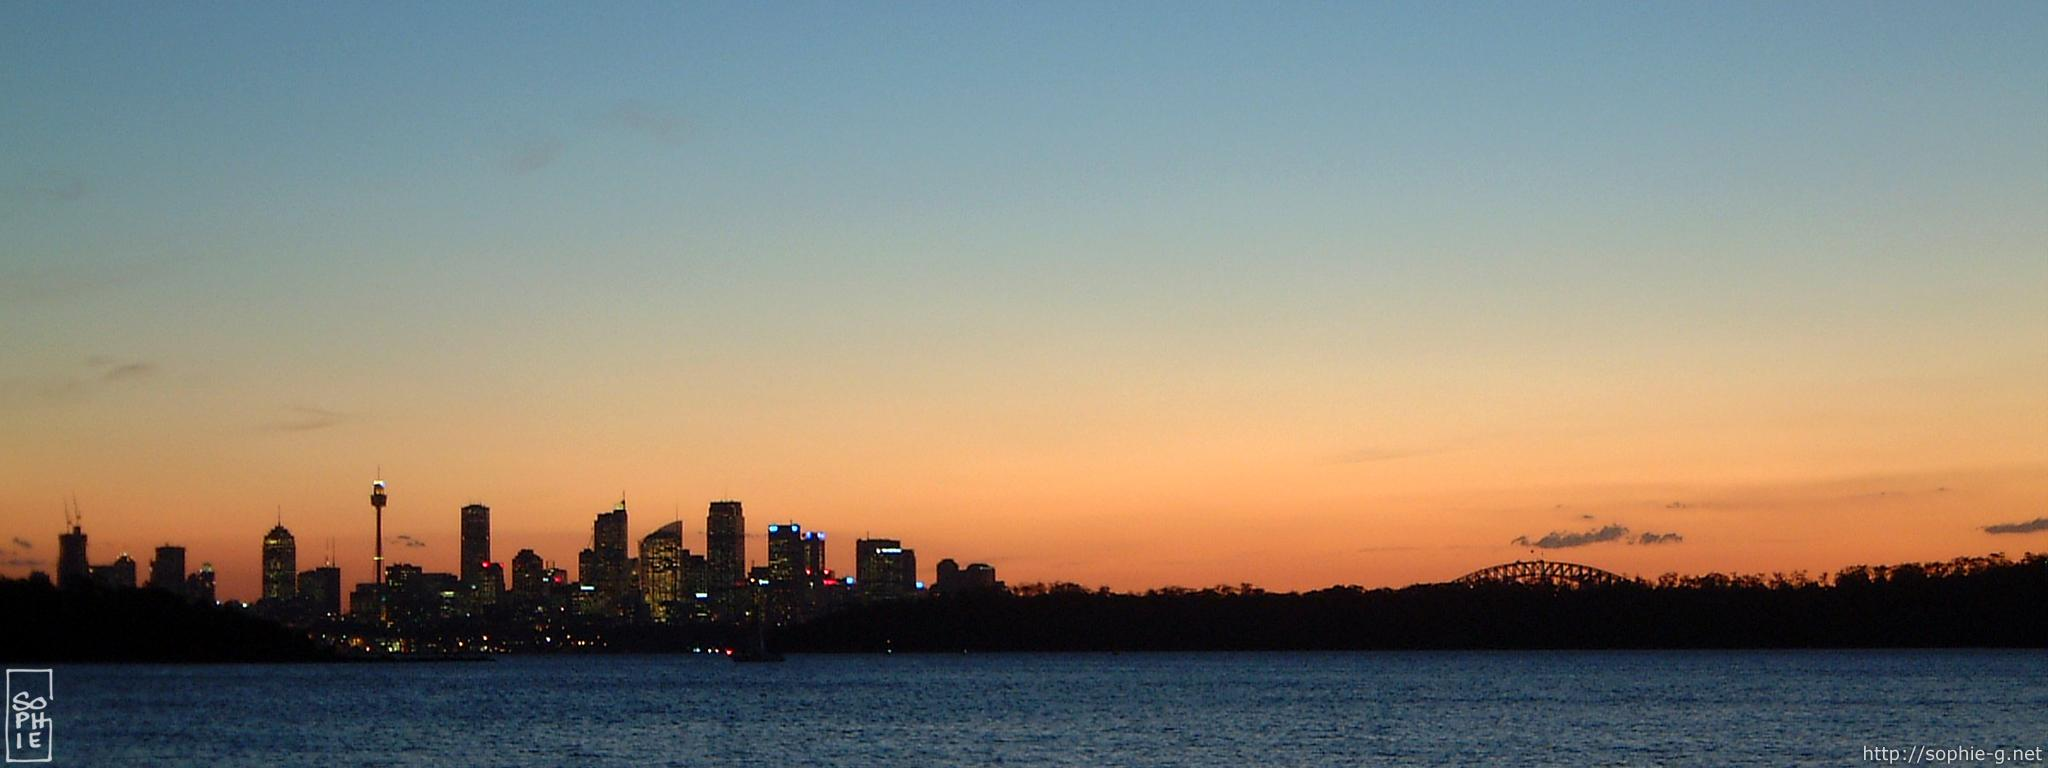 400 800 Hd Wallpaper Sydney Skyline At Sunset 2048 215 768 Desktop Wallpaper